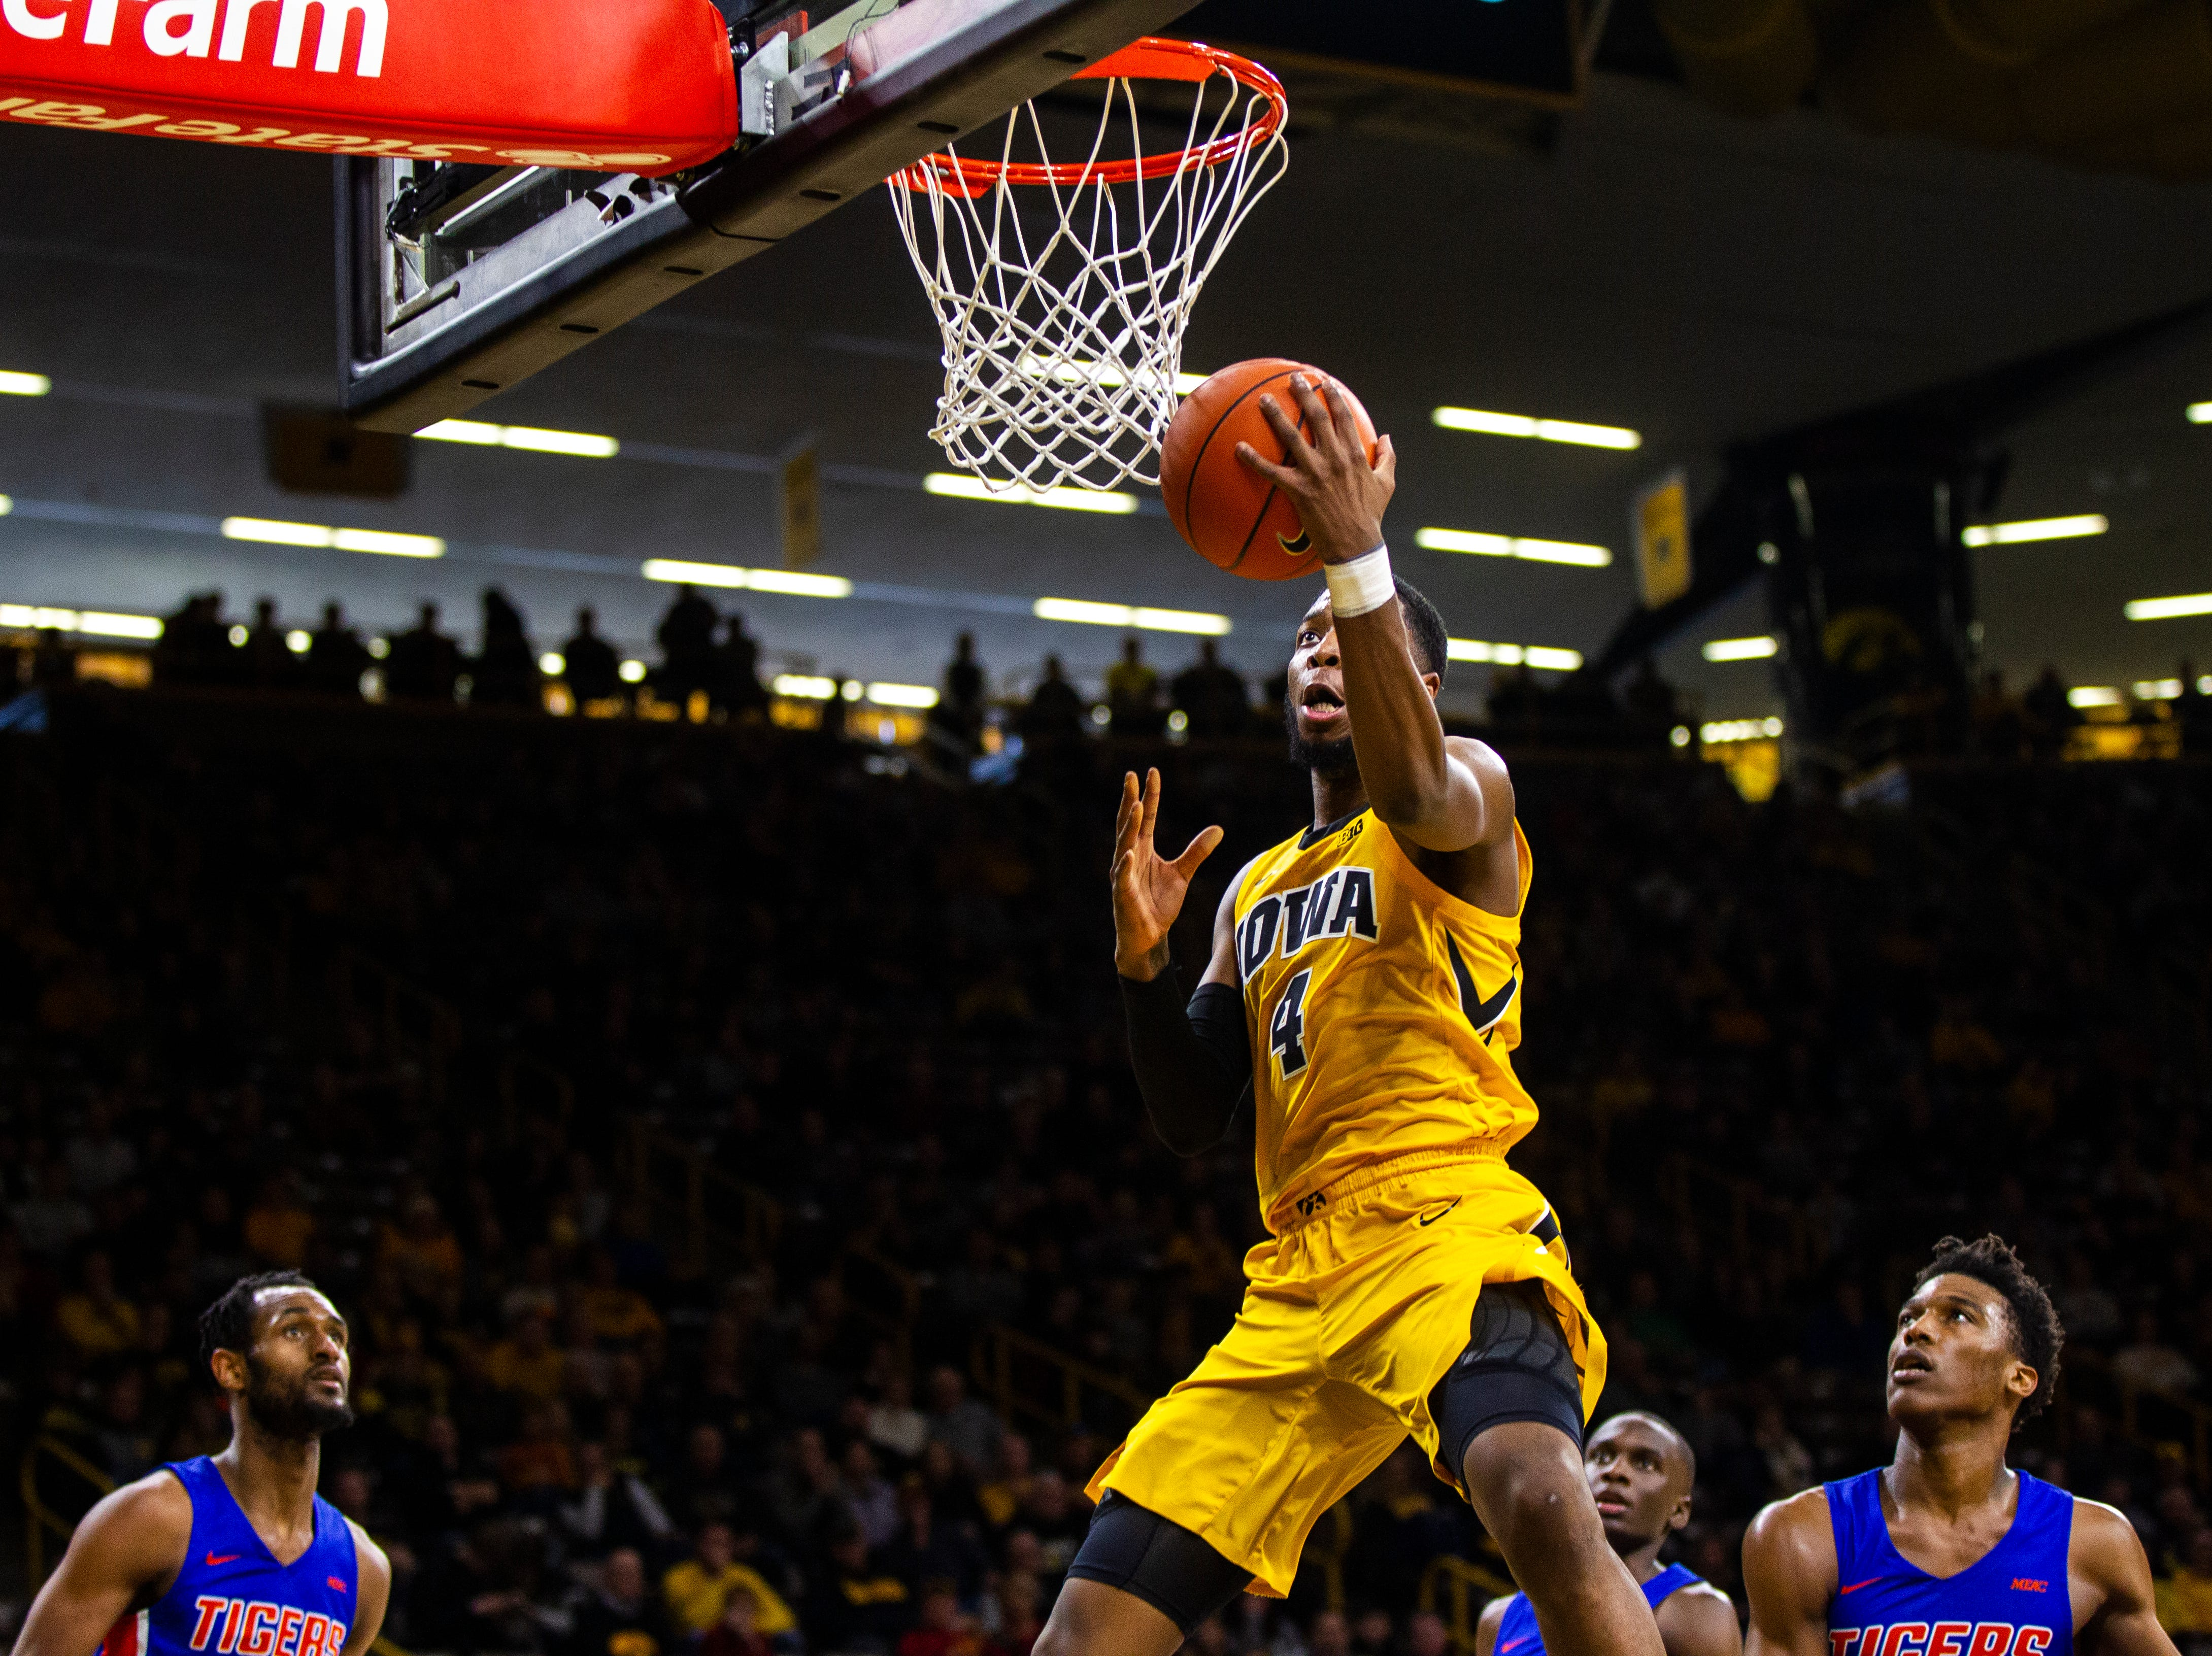 Iowa guard Isaiah Moss (4) makes a layup during a NCAA men's basketball game on Saturday, Dec. 22, 2018, at Carver-Hawkeye Arena in Iowa City.